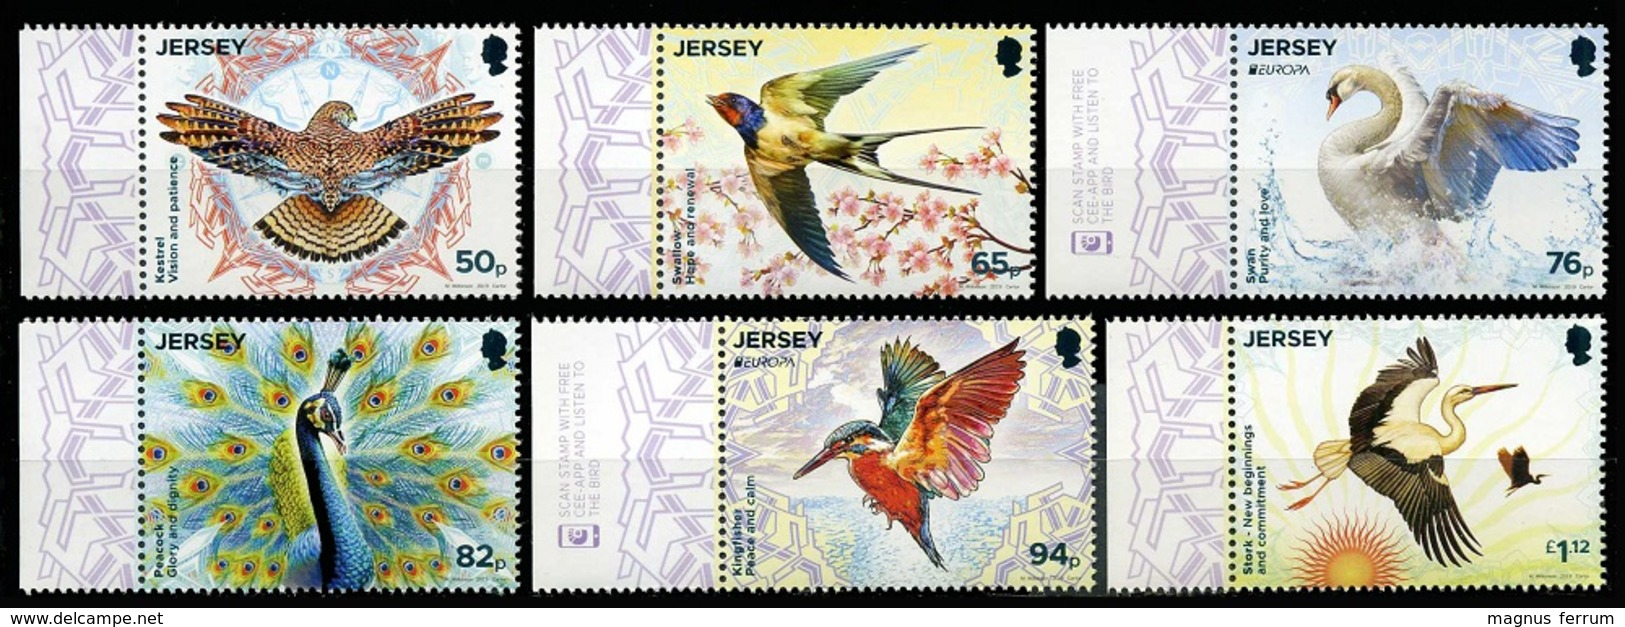 2019 Jersey, Europa, CEPT, Fauna, National Birds, 6 Stamps, MNH - Other